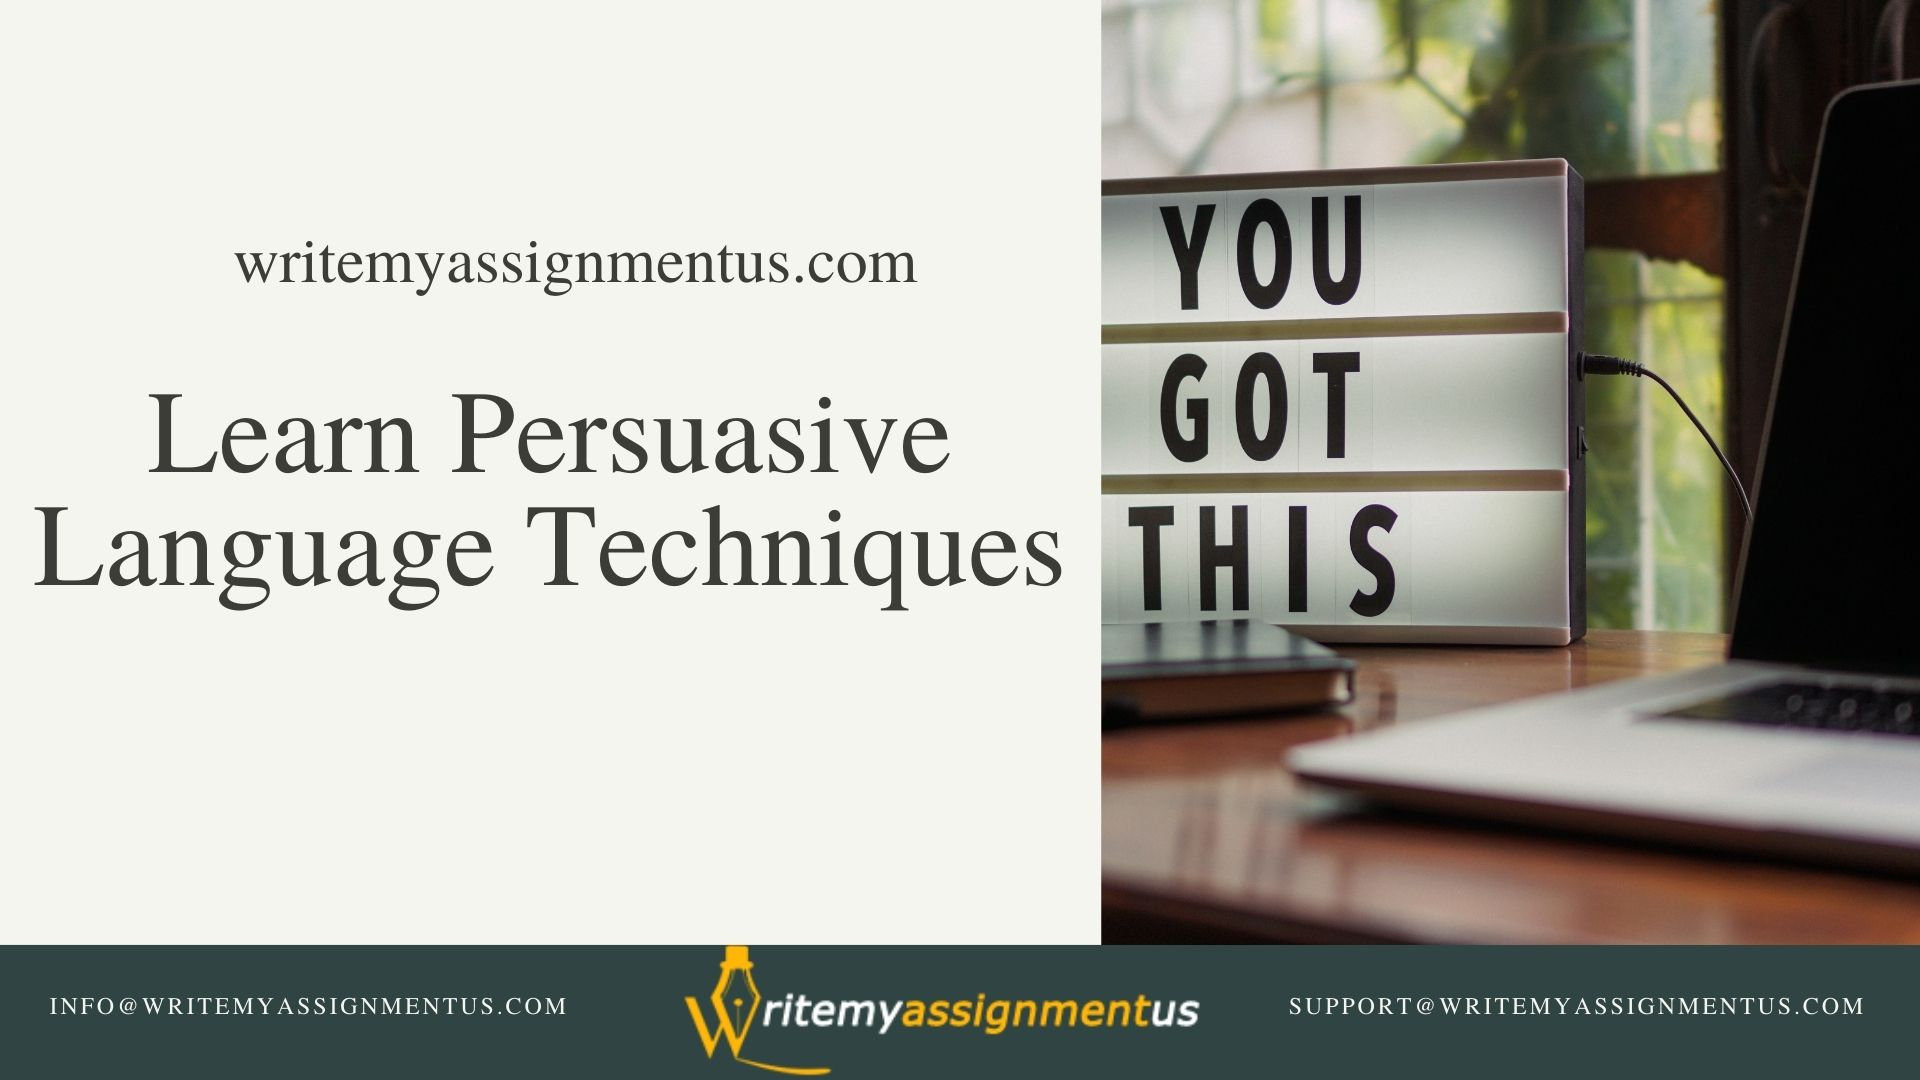 Learn Persuasive Language Techniques That Make You an Intellectual Influencer